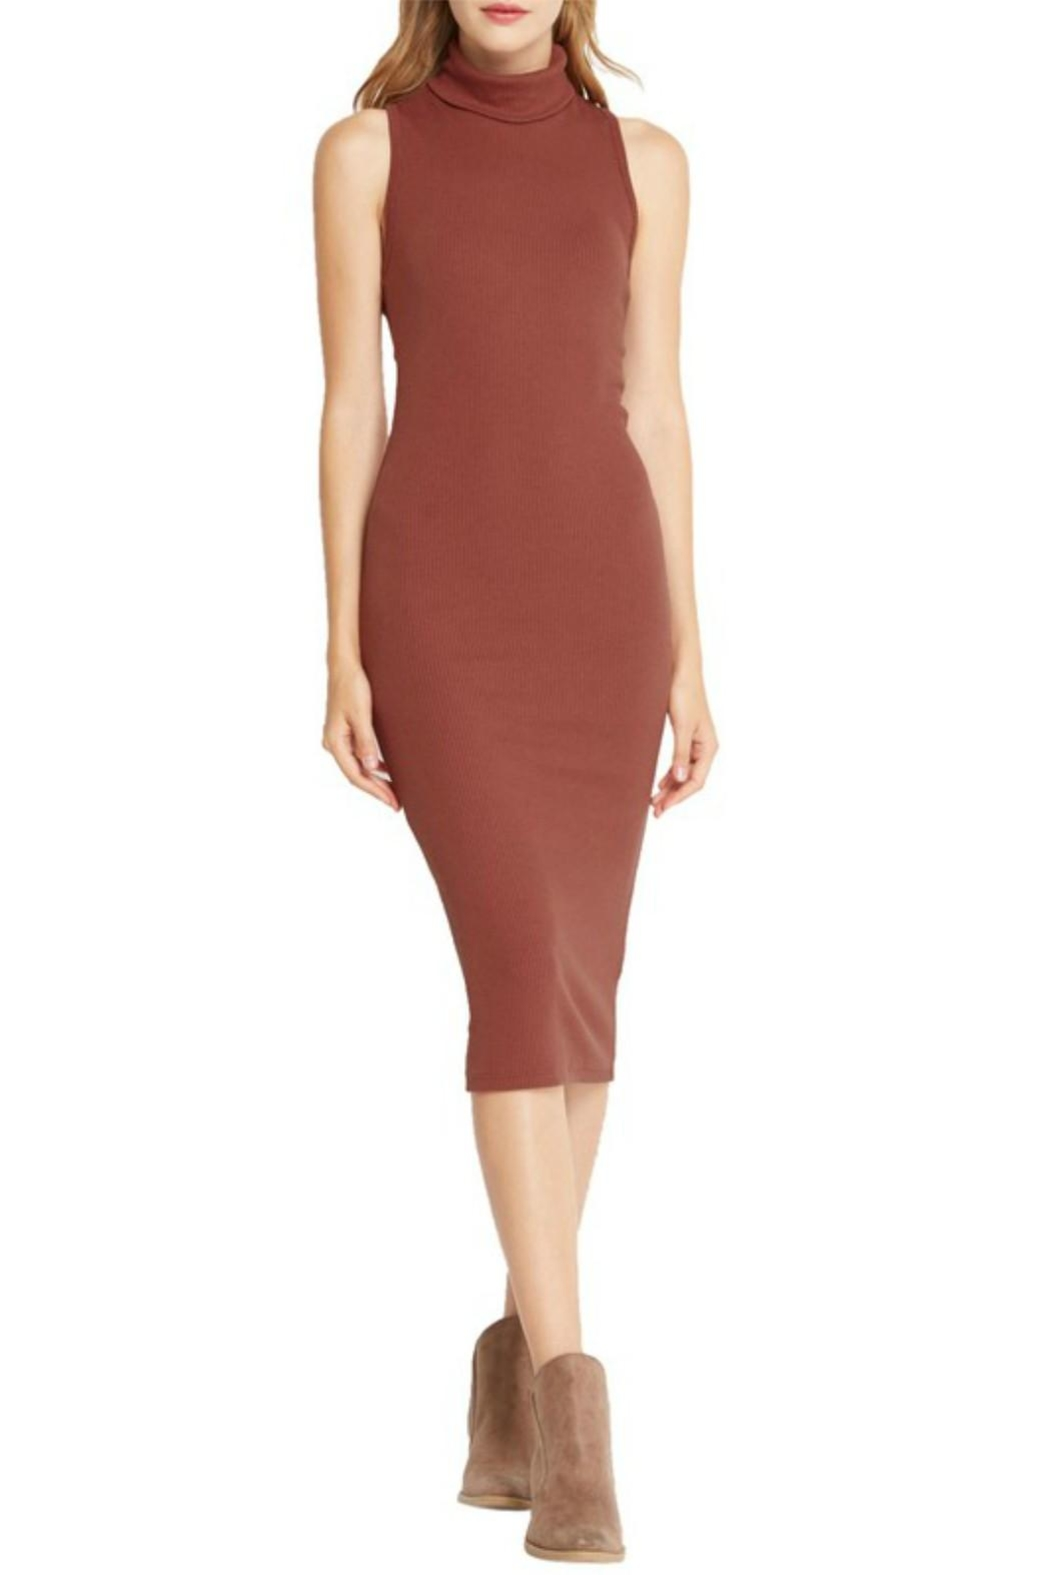 Mai Tai Rust Midi Dress - Main Image